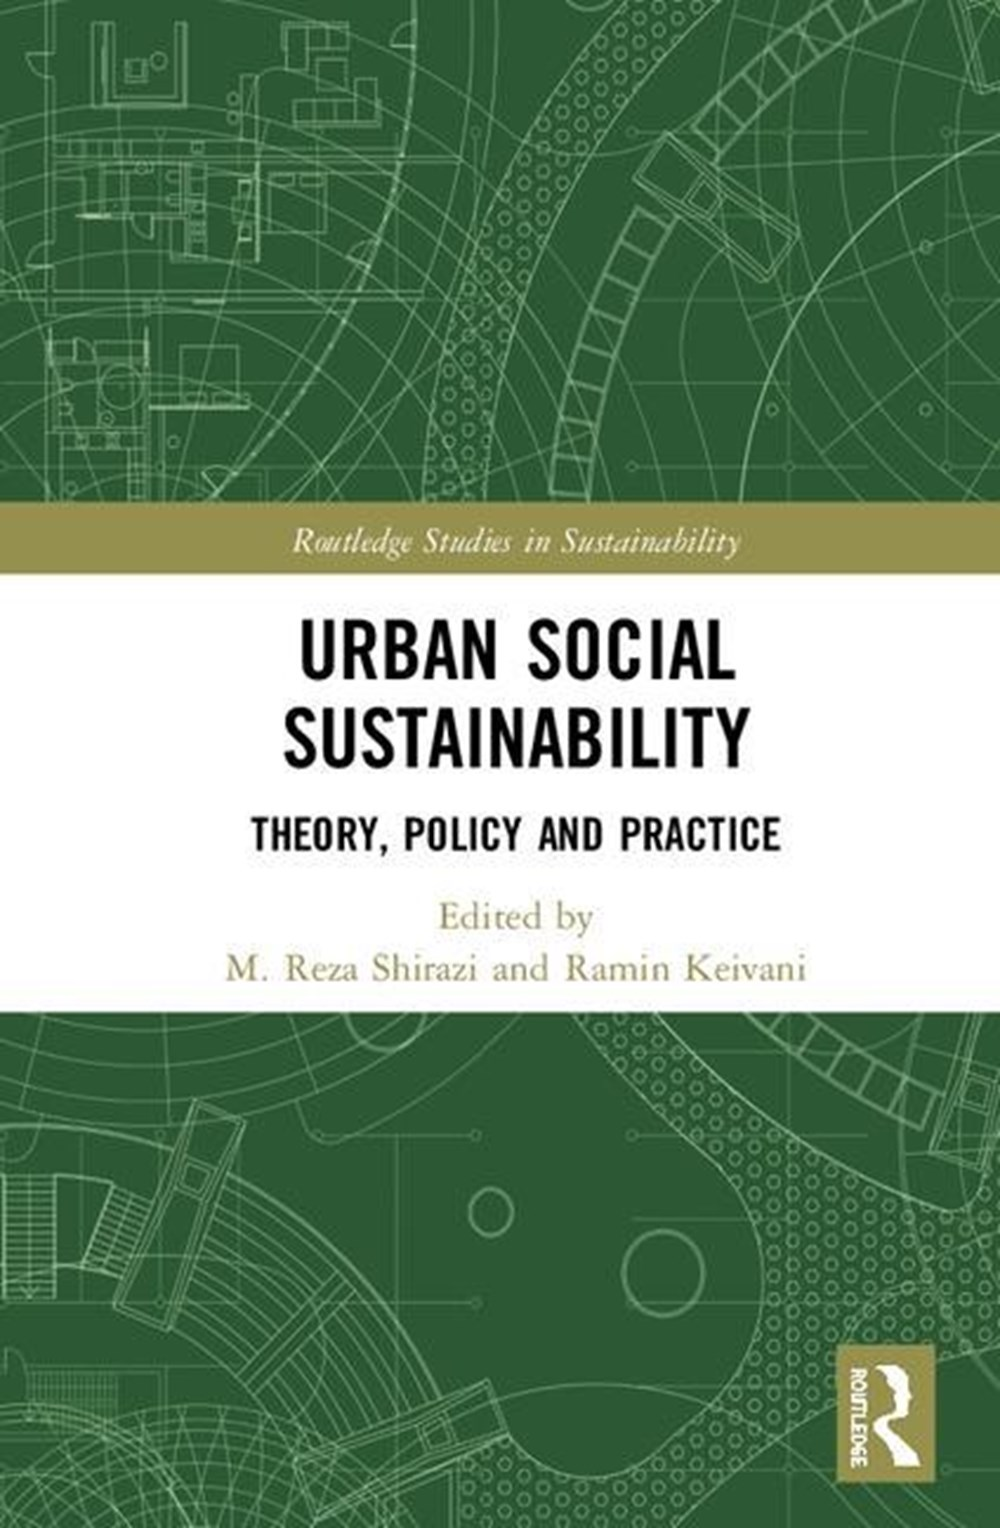 Urban Social Sustainability Theory, Policy and Practice